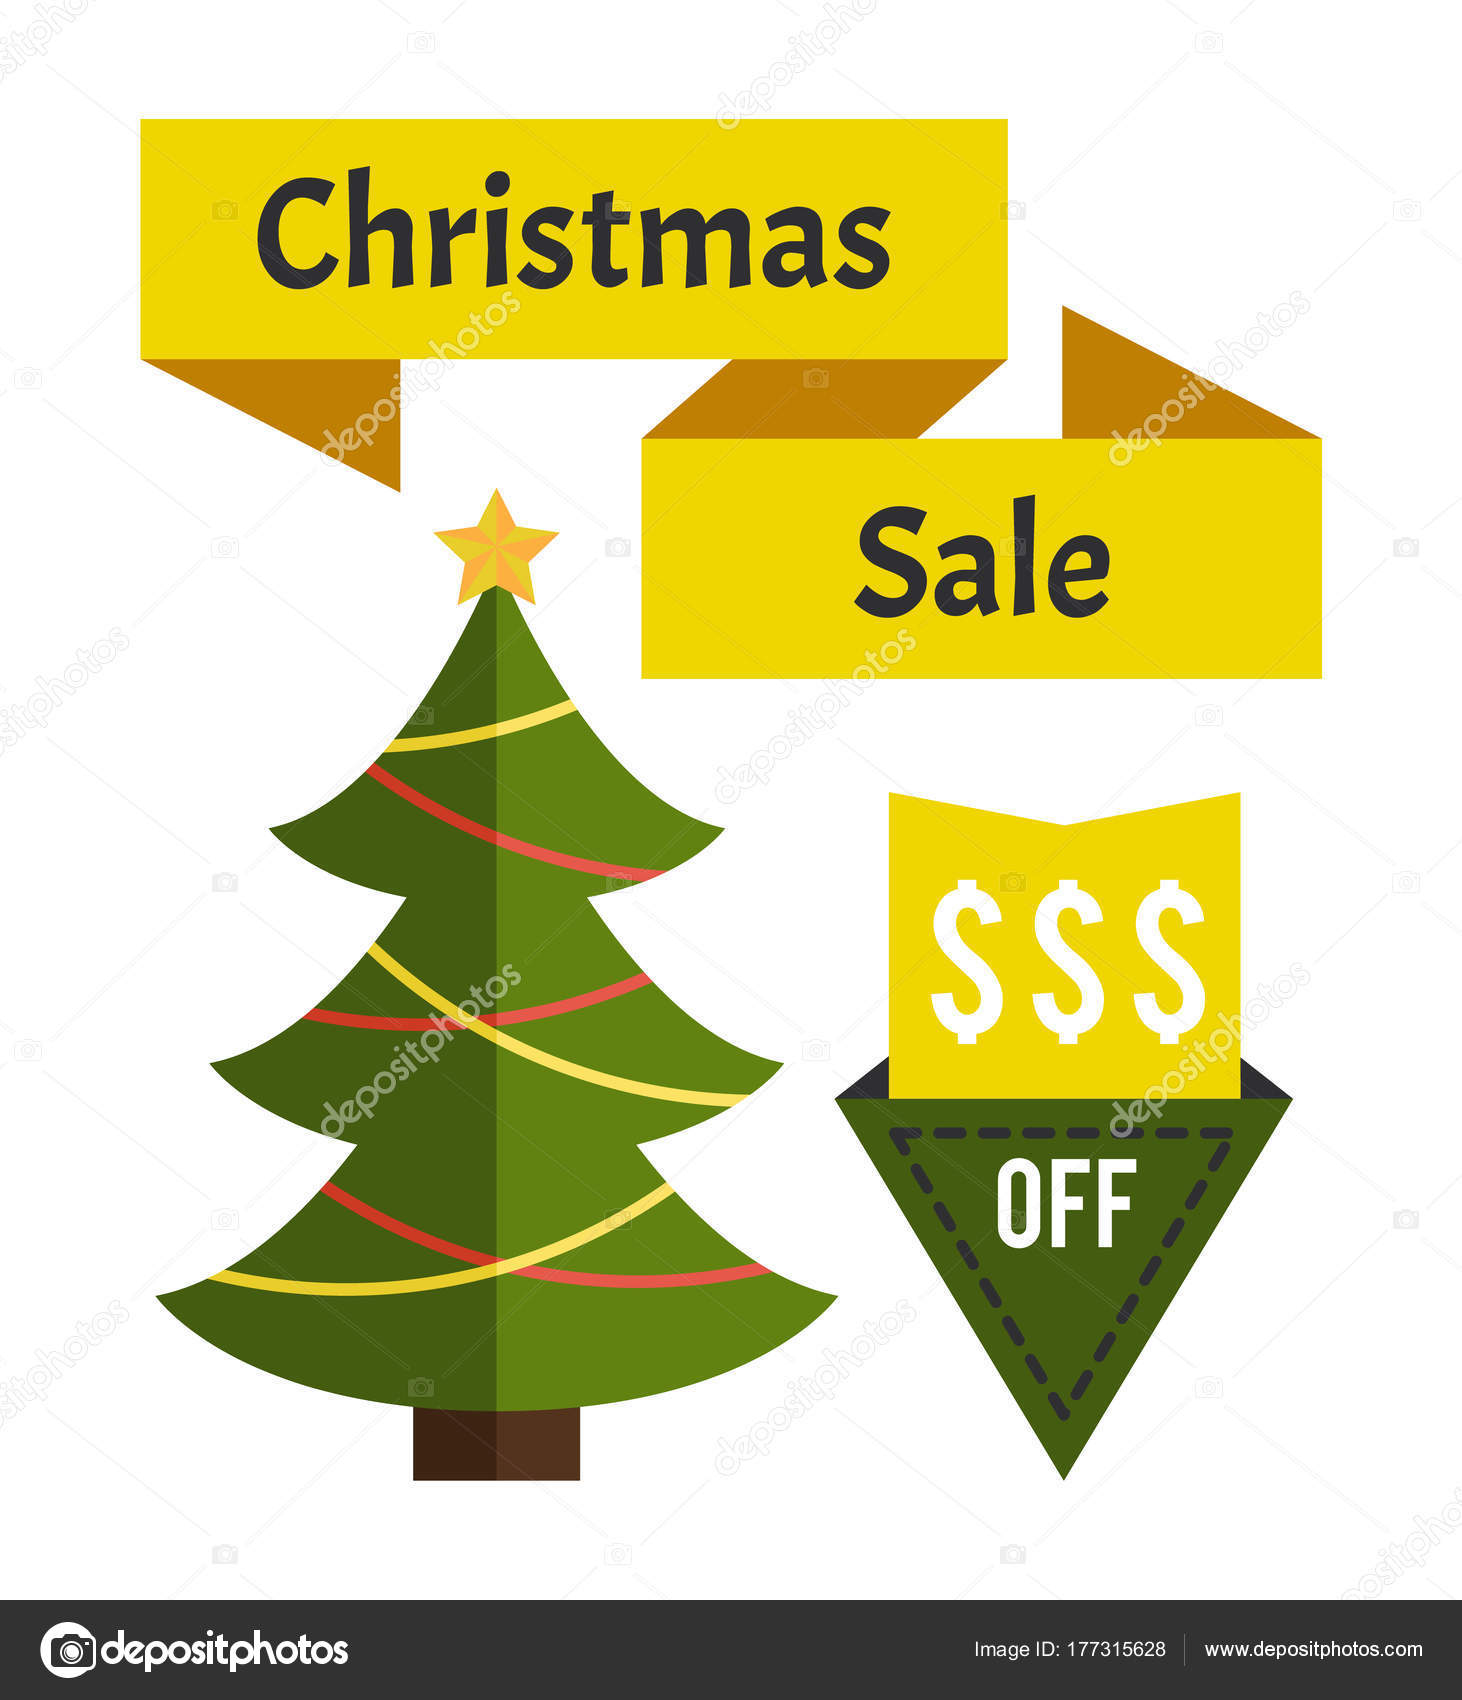 Christmas Sale Price Off New Year Decorated Tree — Stock Vector ...